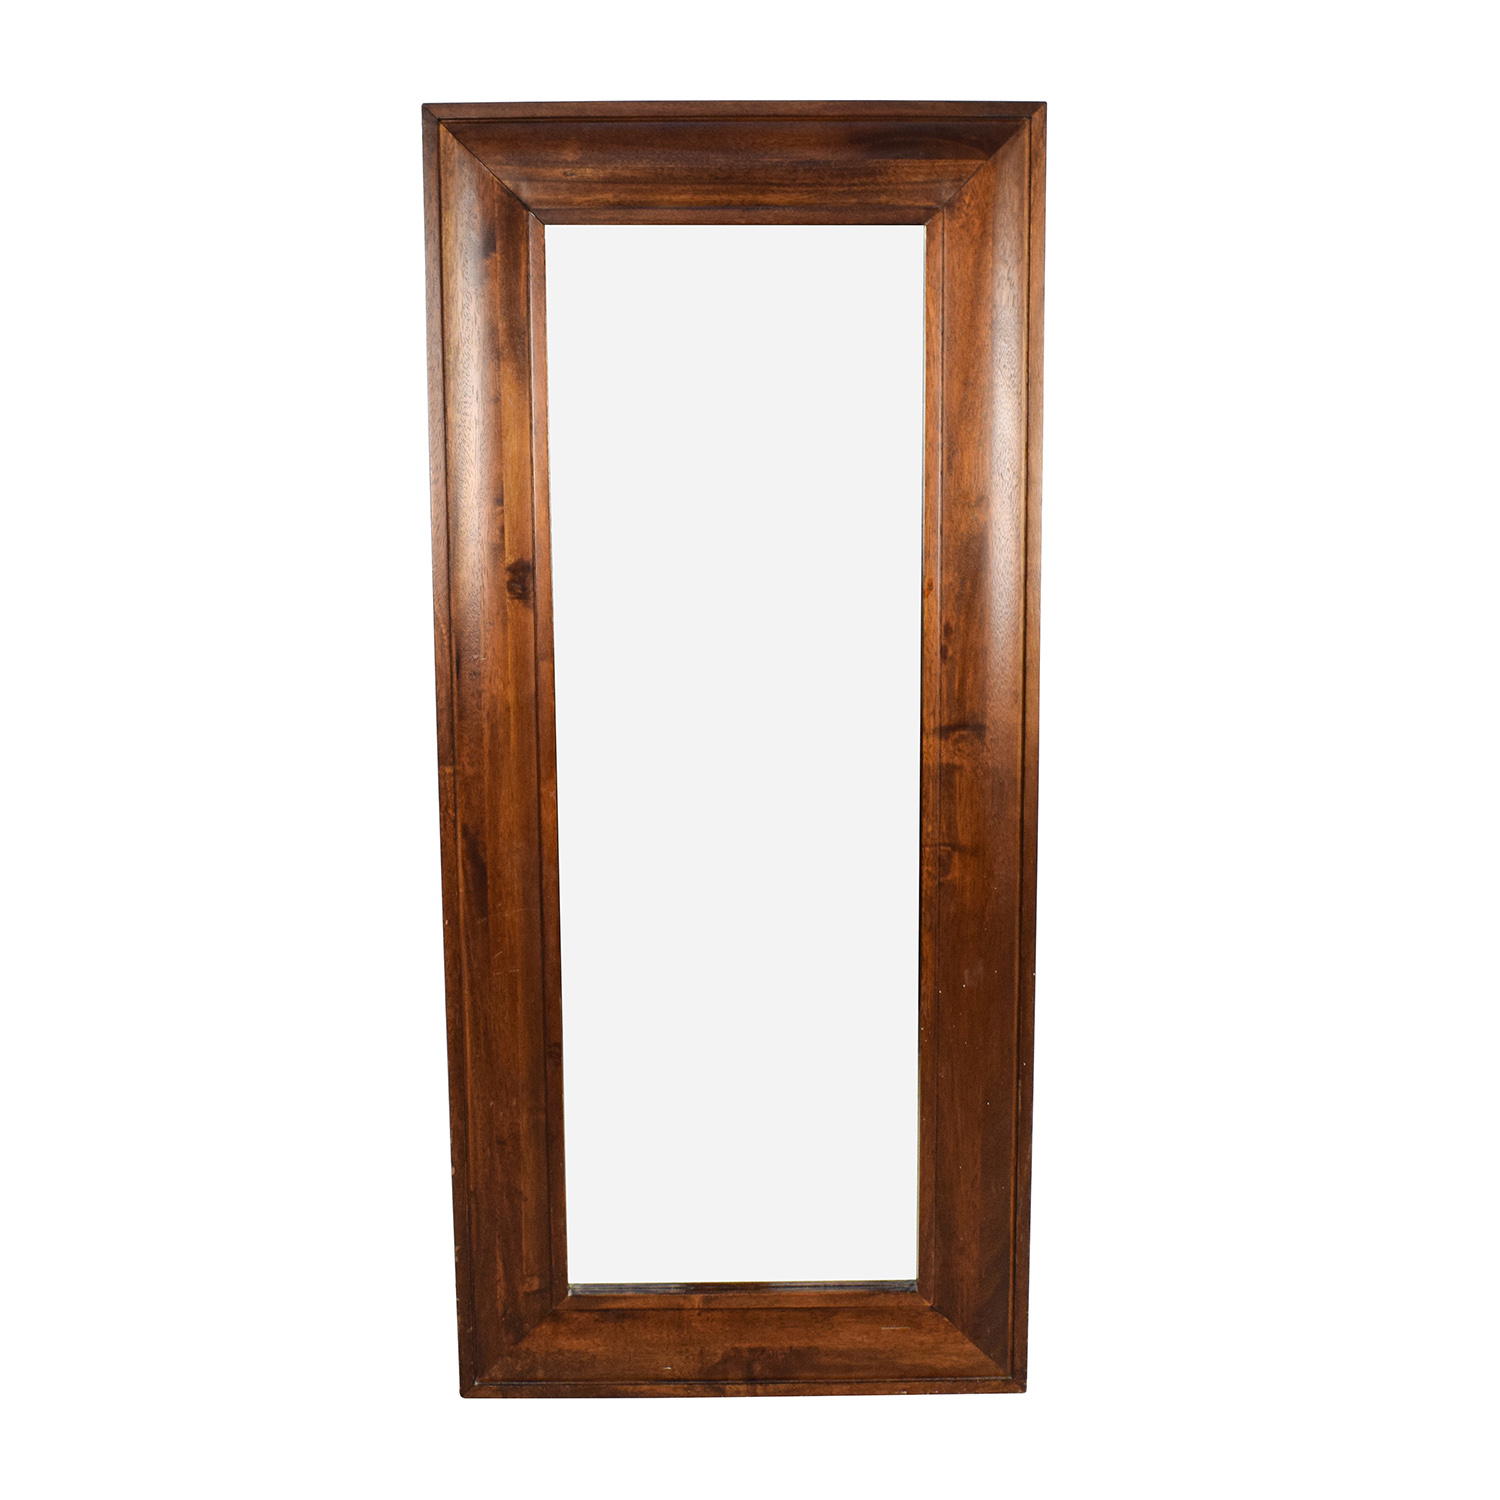 buy Large Wood Framed Standing Mirror online